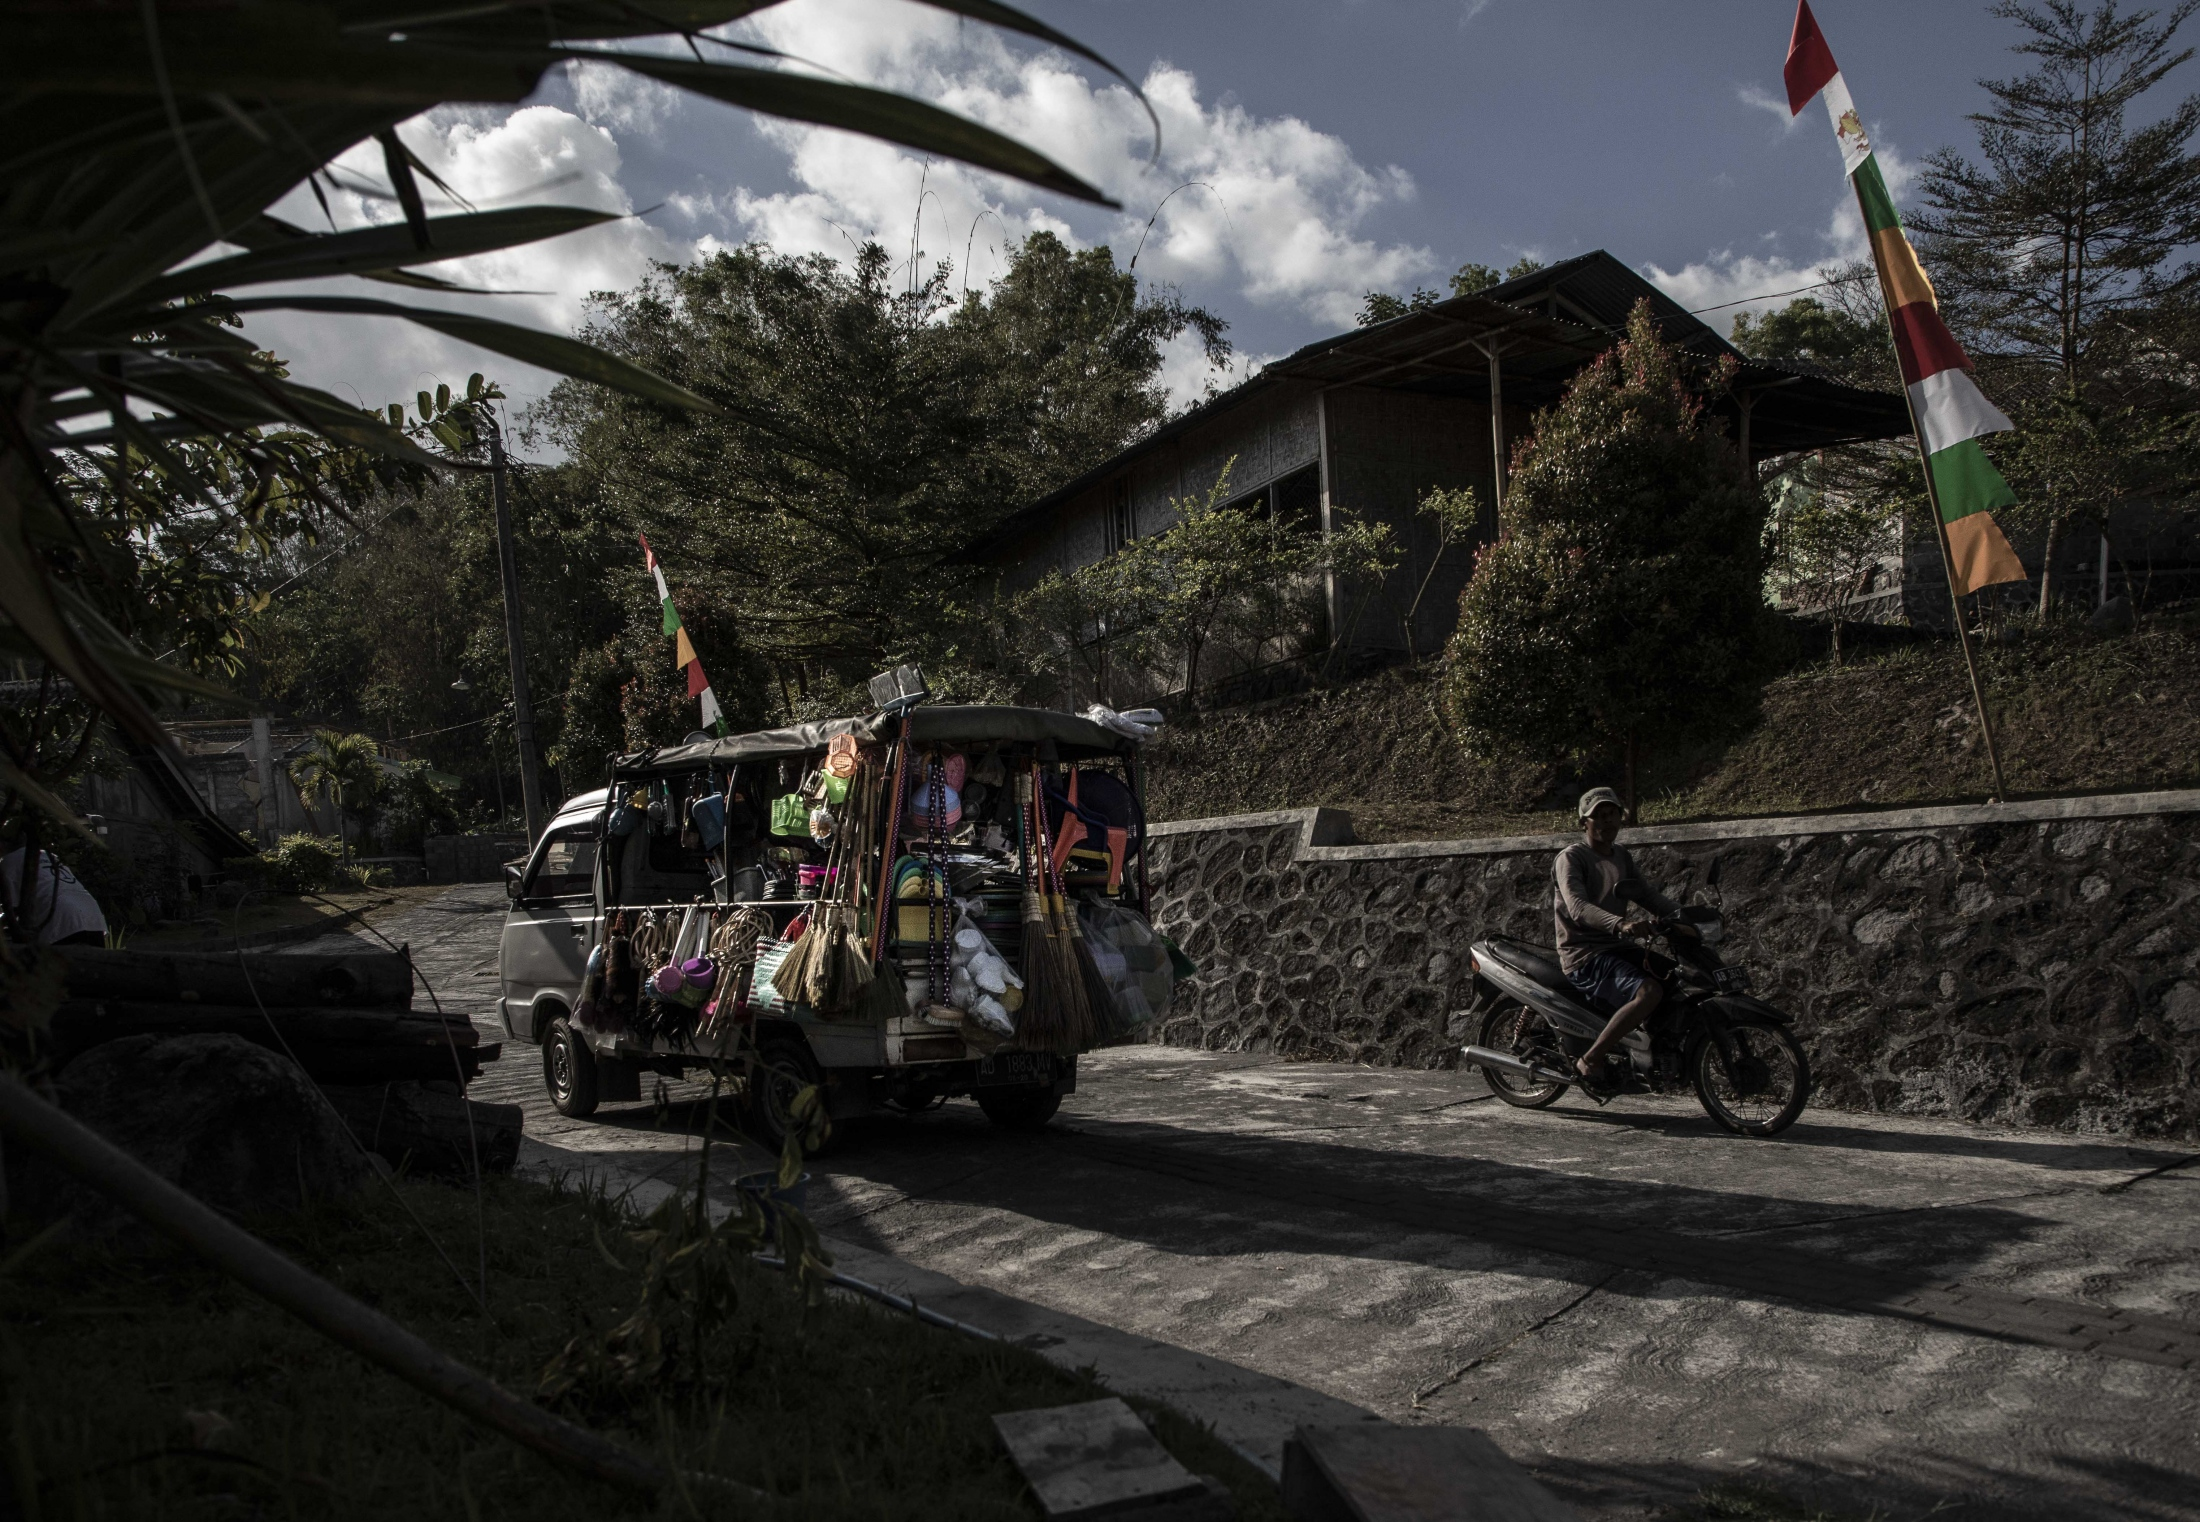 An afternoon street scene Karang Kendal - the few cars that visit the village are usually local sellers of household goods.